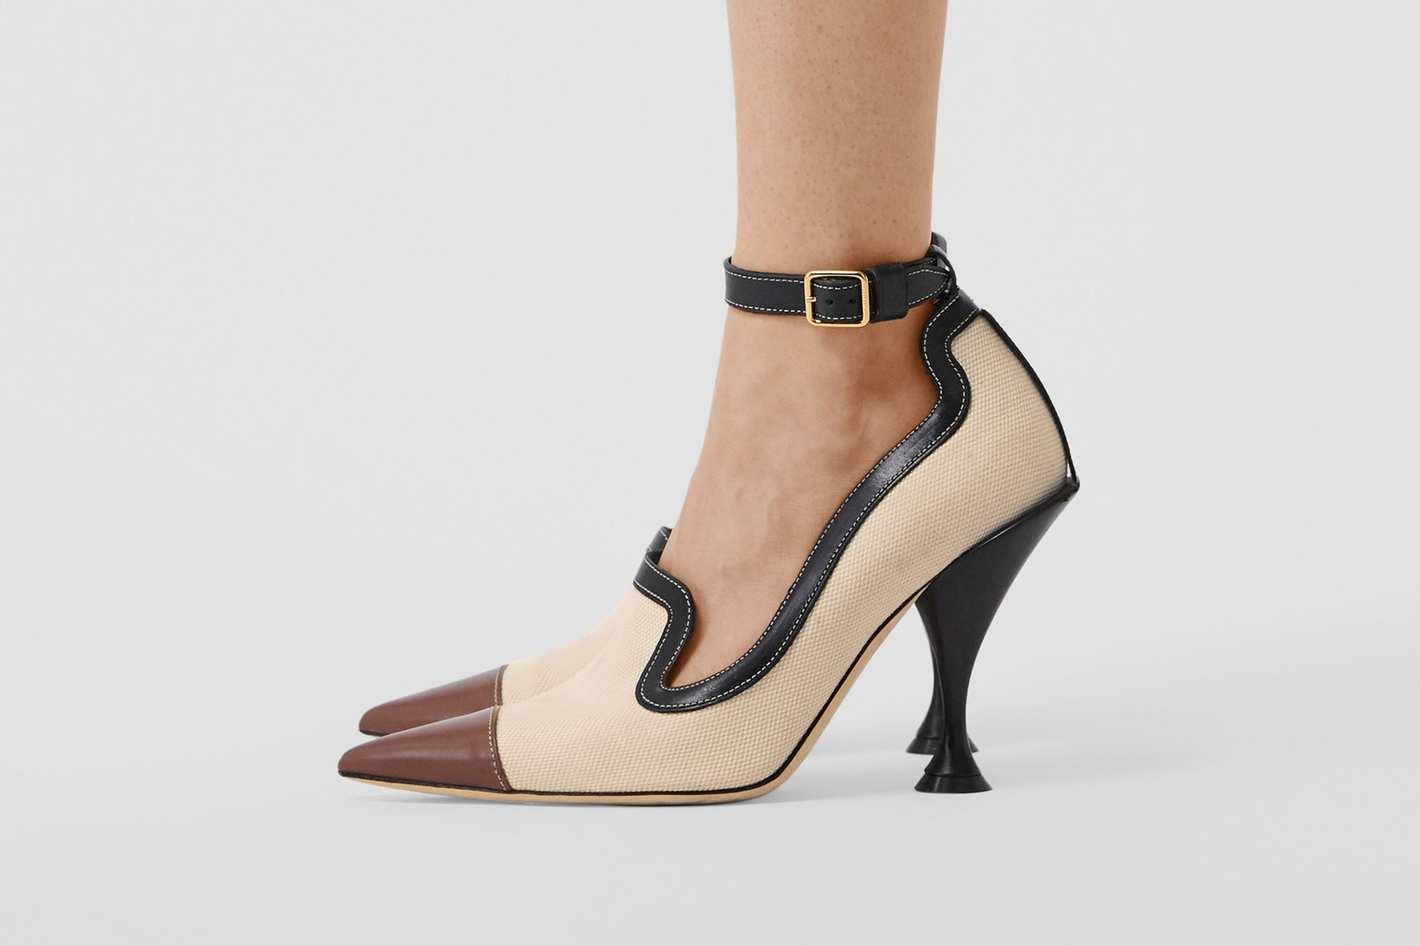 Cotton Canvas and Leather Point-toe Pumps